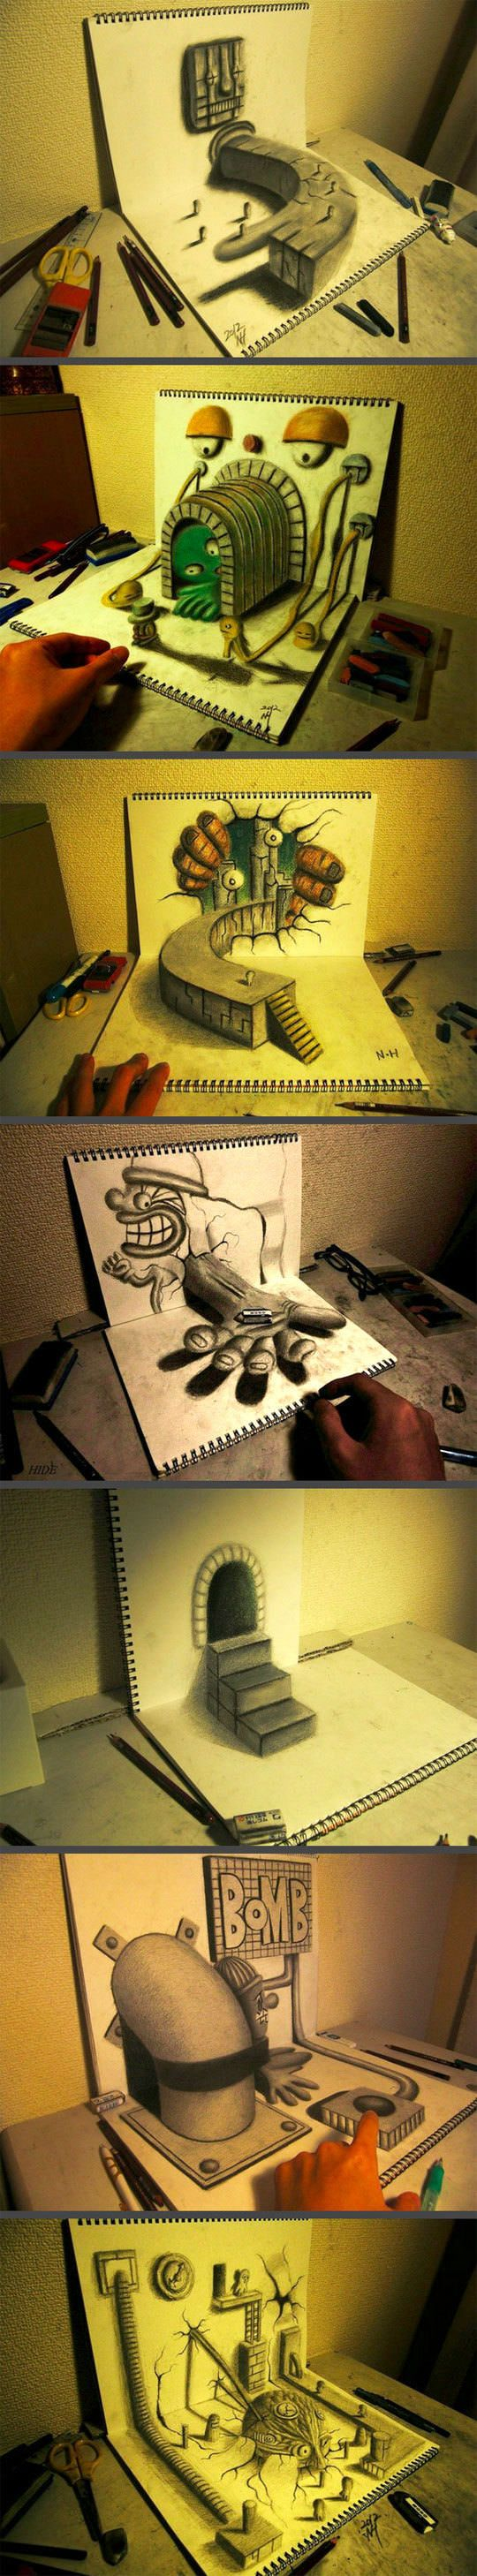 Optical illusion sketchbook drawings...